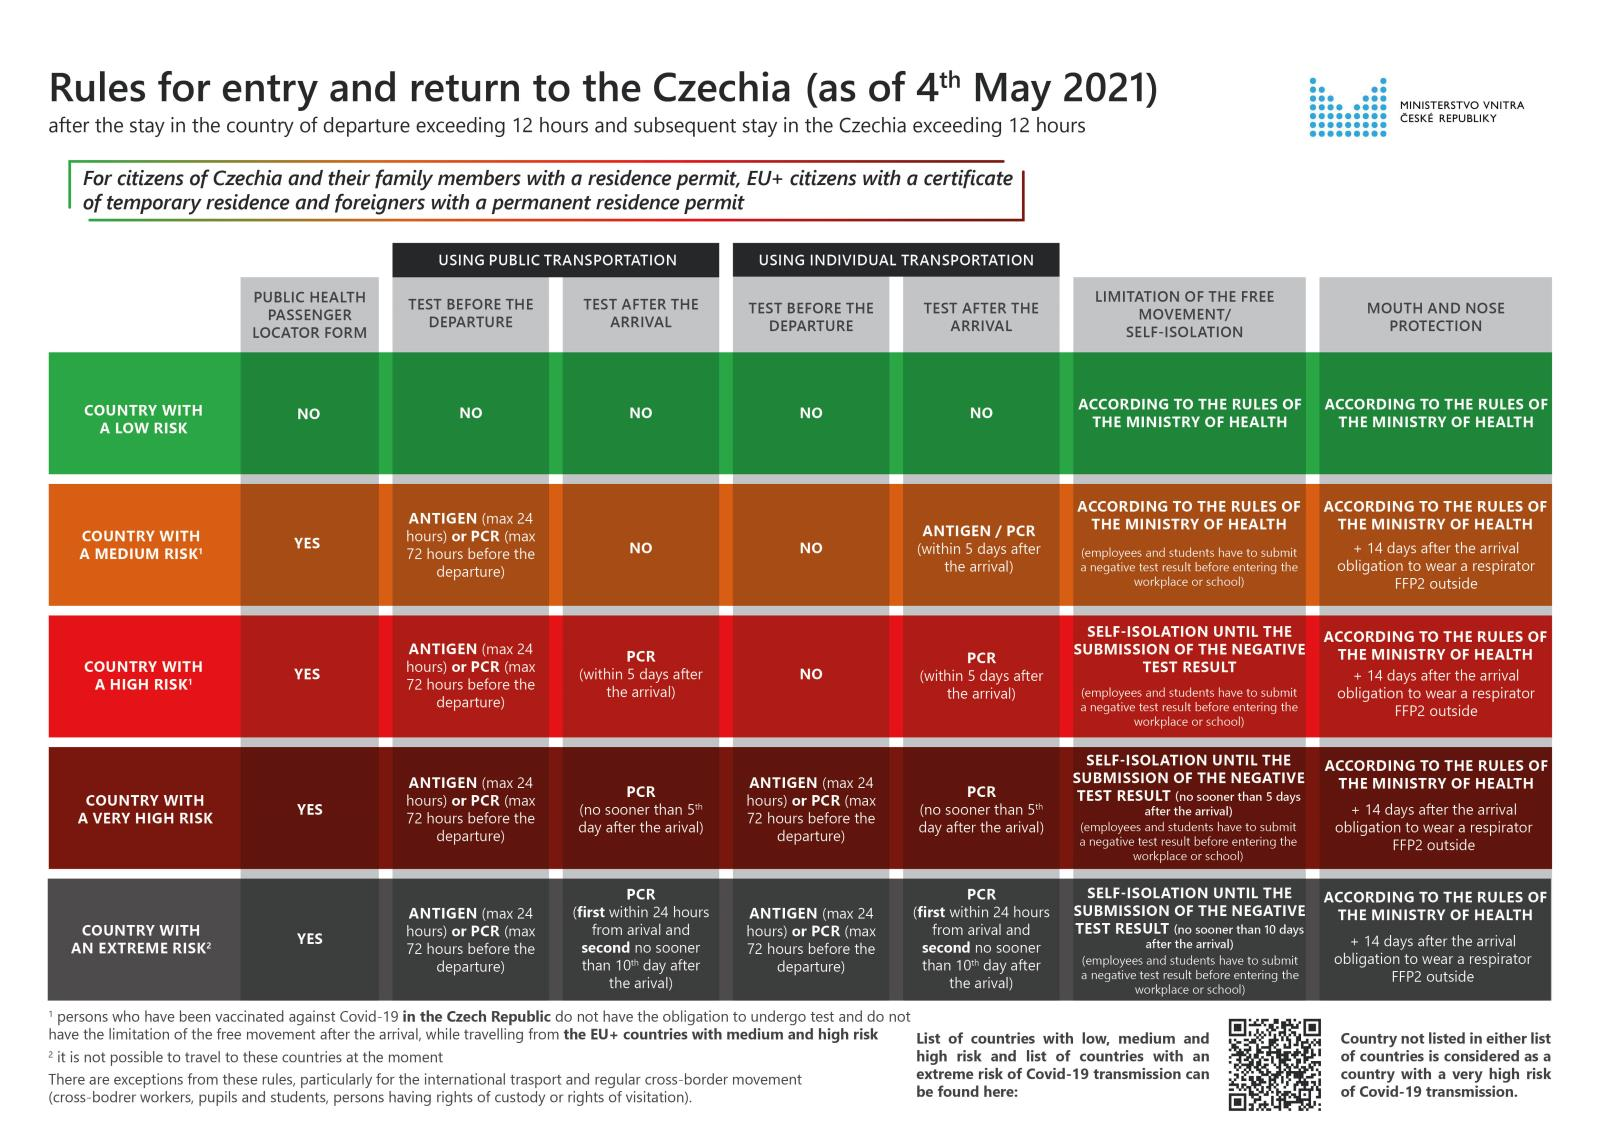 Rules_for_entry_and_return_to_the_Czechia_for_CZ_citizens_and_residents_as_of_May_4th_2021_-_20210504.jpg